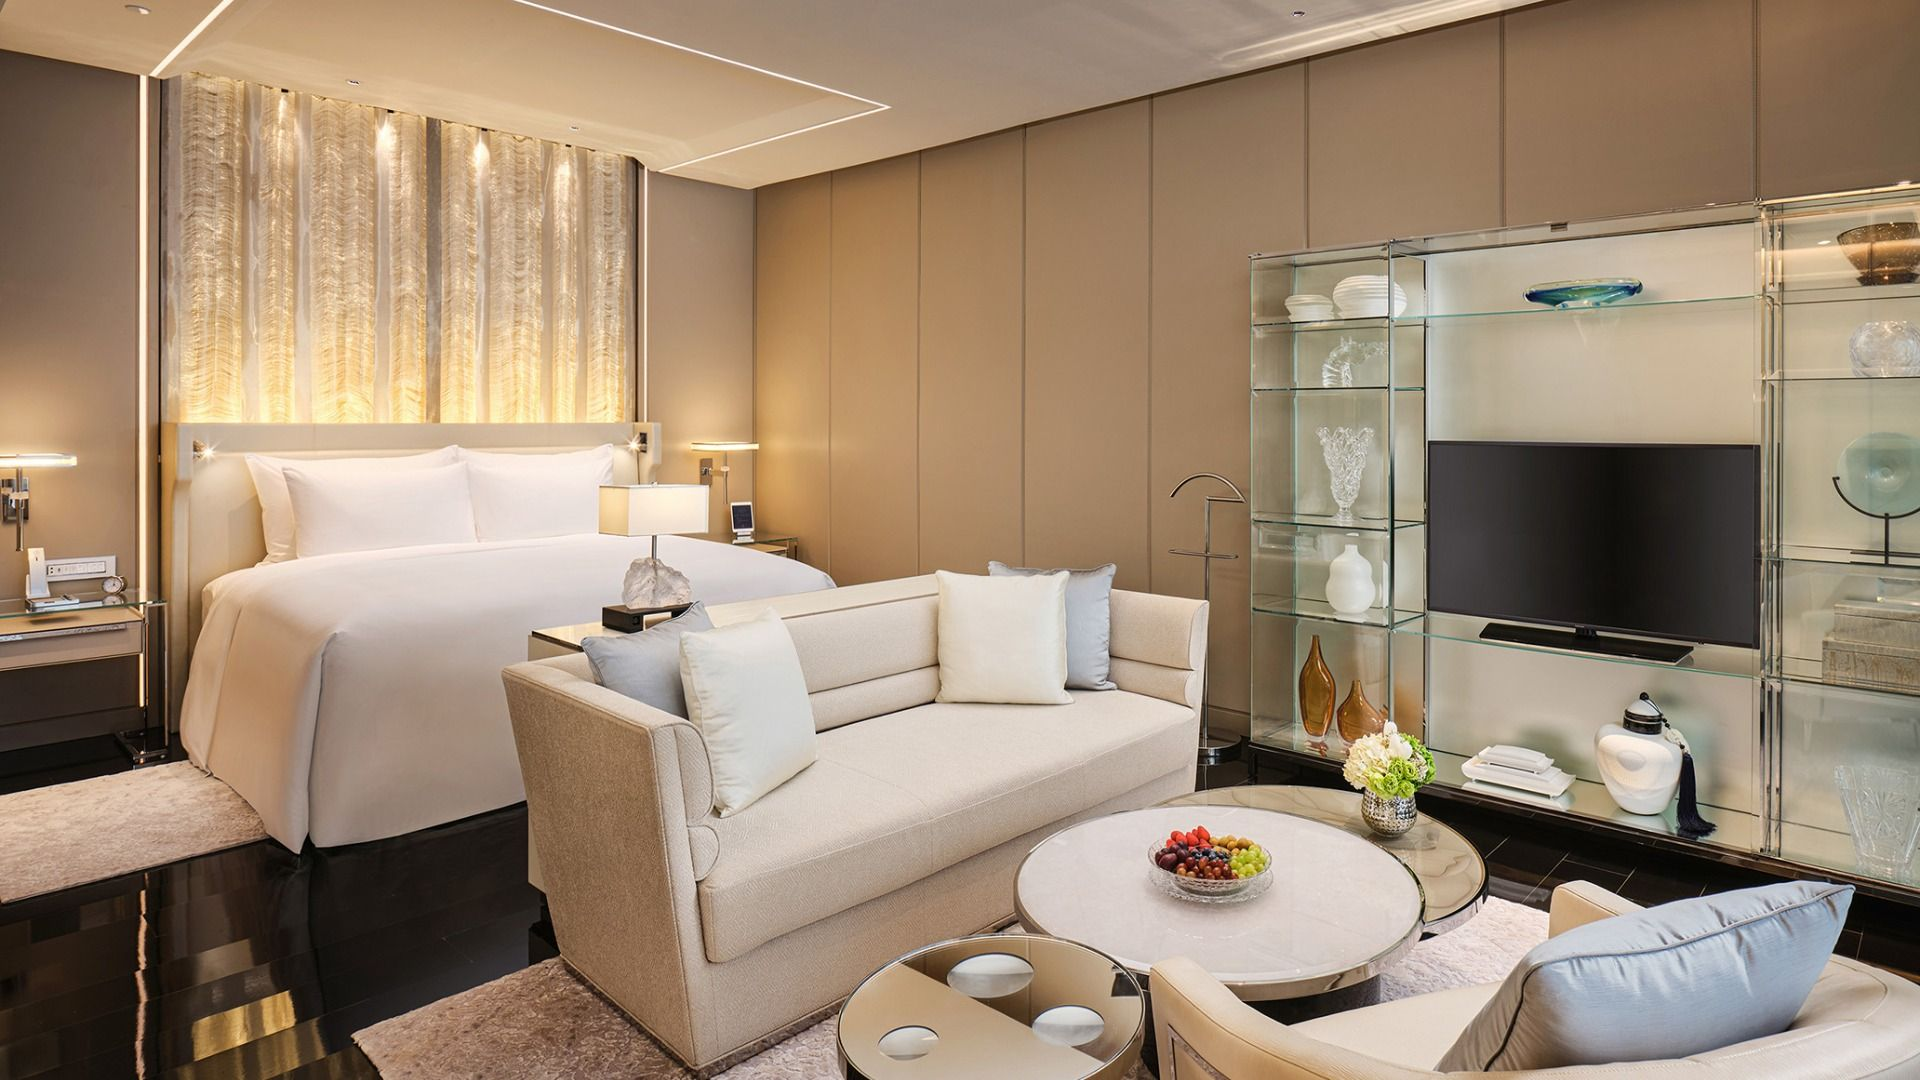 The contemporary stateroom at J Hotel Shanghai Tower features modern, sleek decor.